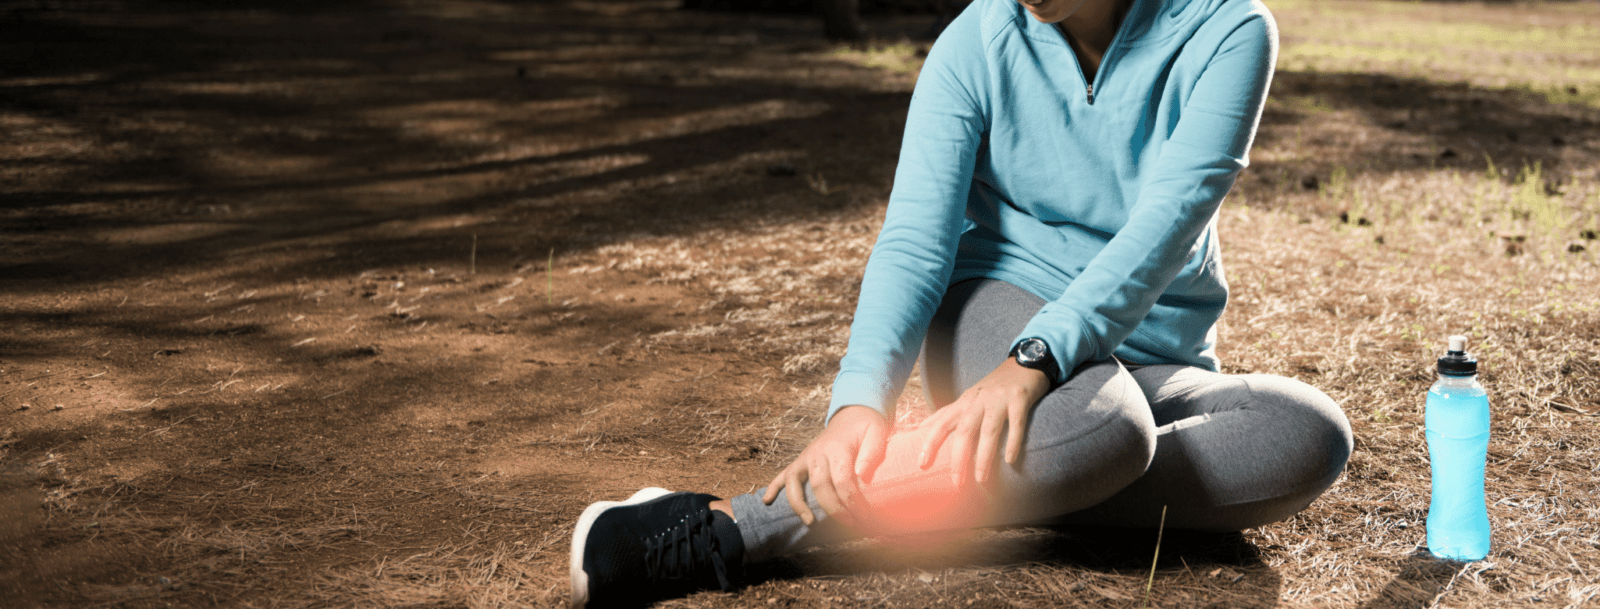 05 of #10 – (ICSC) Lower Extremity Injuries in Sport